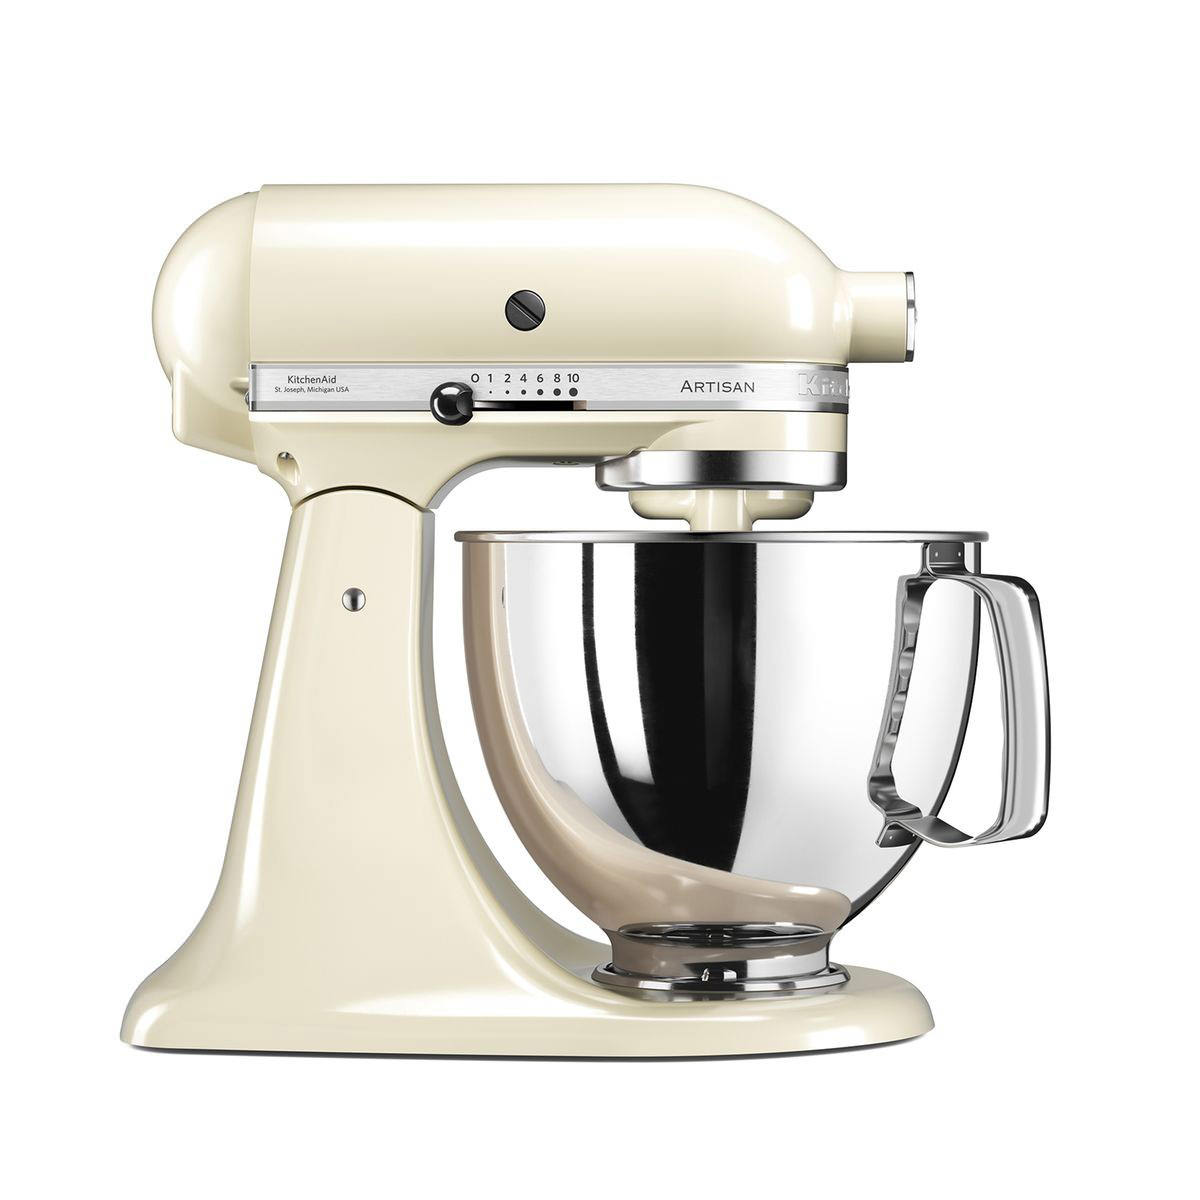 Blog-Mode-And-The-City-Lifestyle-Cinq-Petites-Choses-219-robot-patissier-kitchen-aid-la-redoute